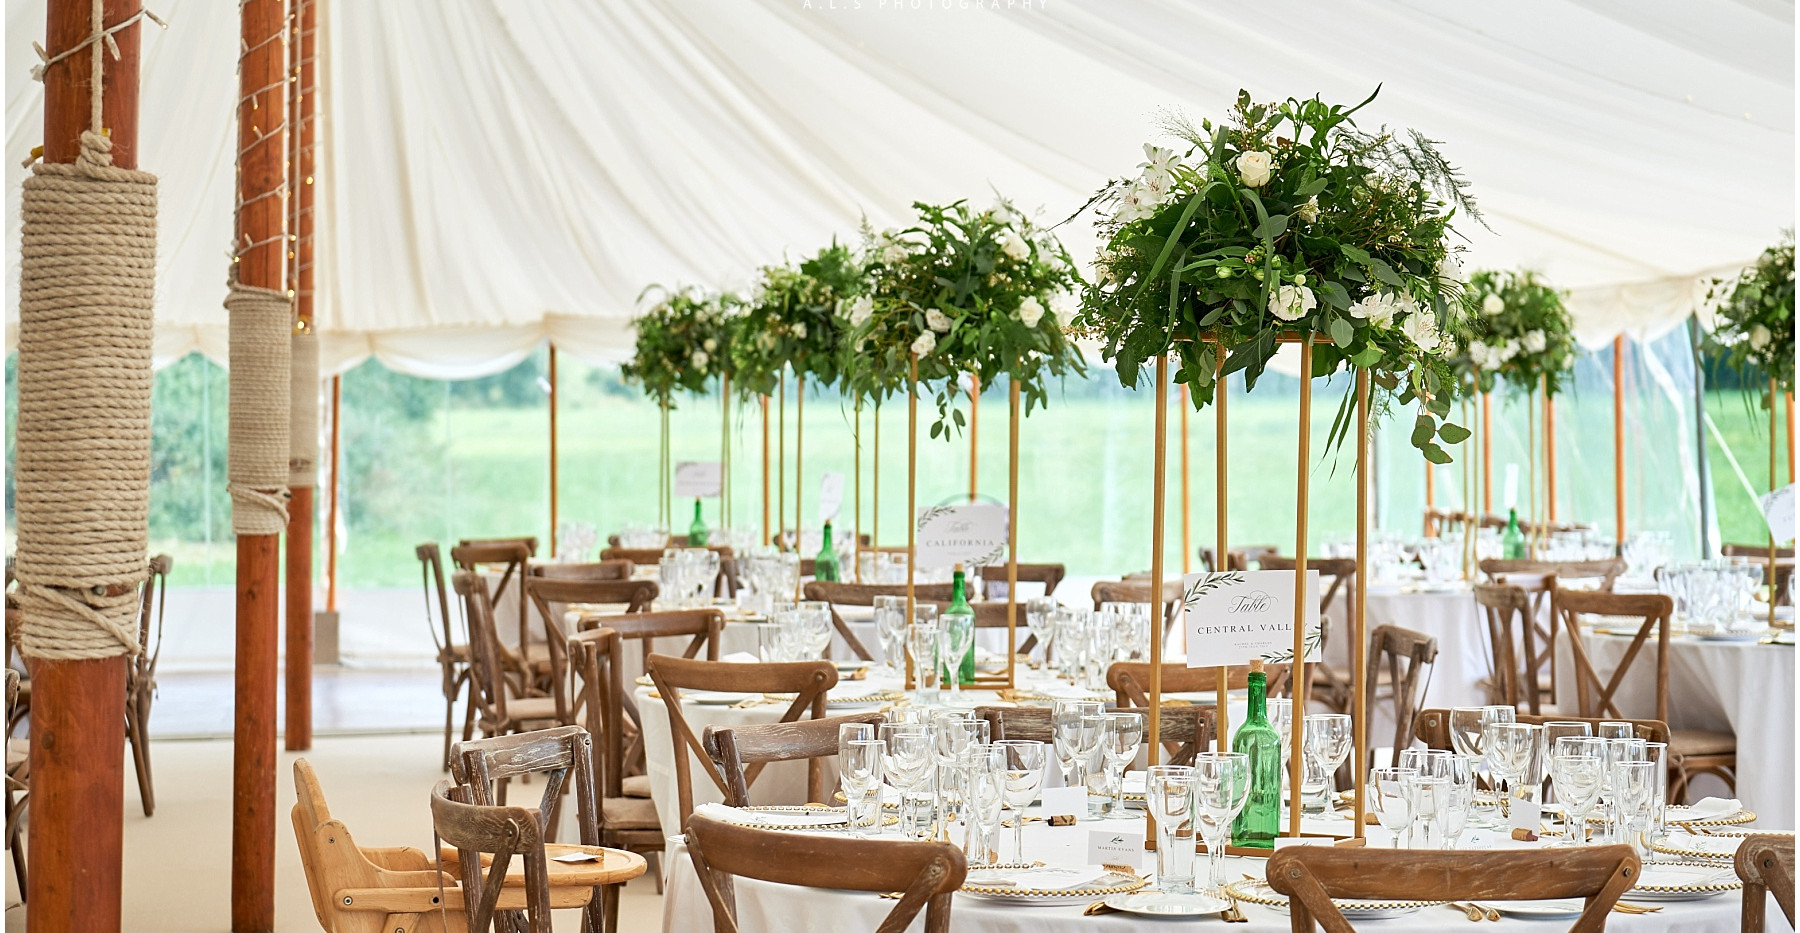 Stylish marquee wedding flowers